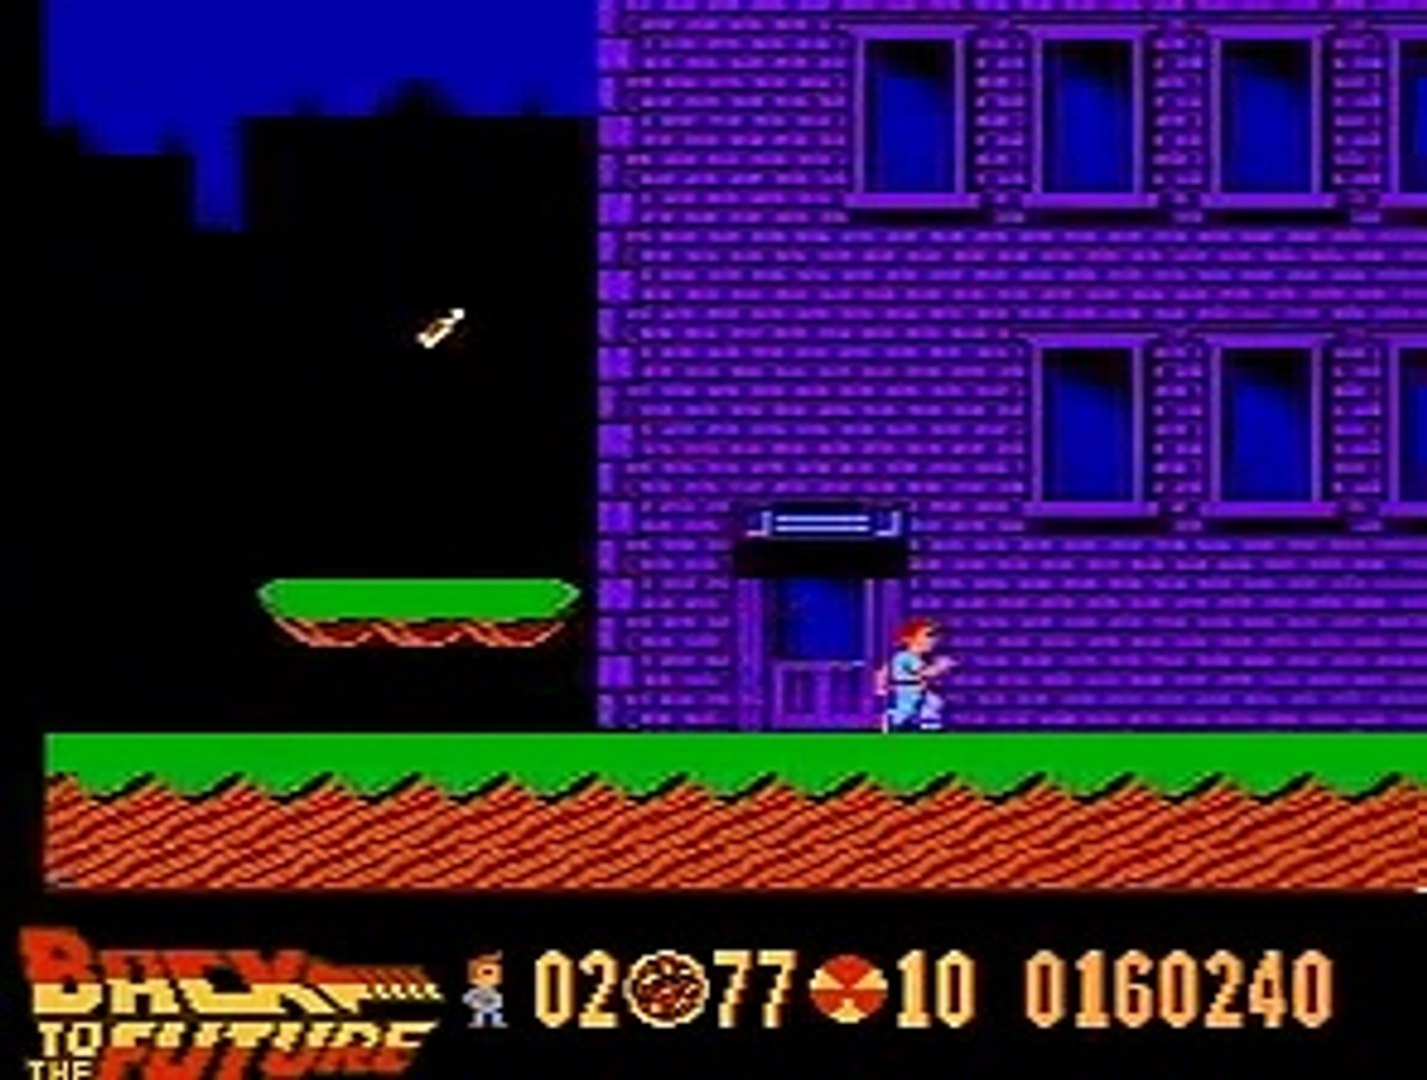 TAS Back to the Future 2-and amp; 3 NES in 74:24 by GlitchMa